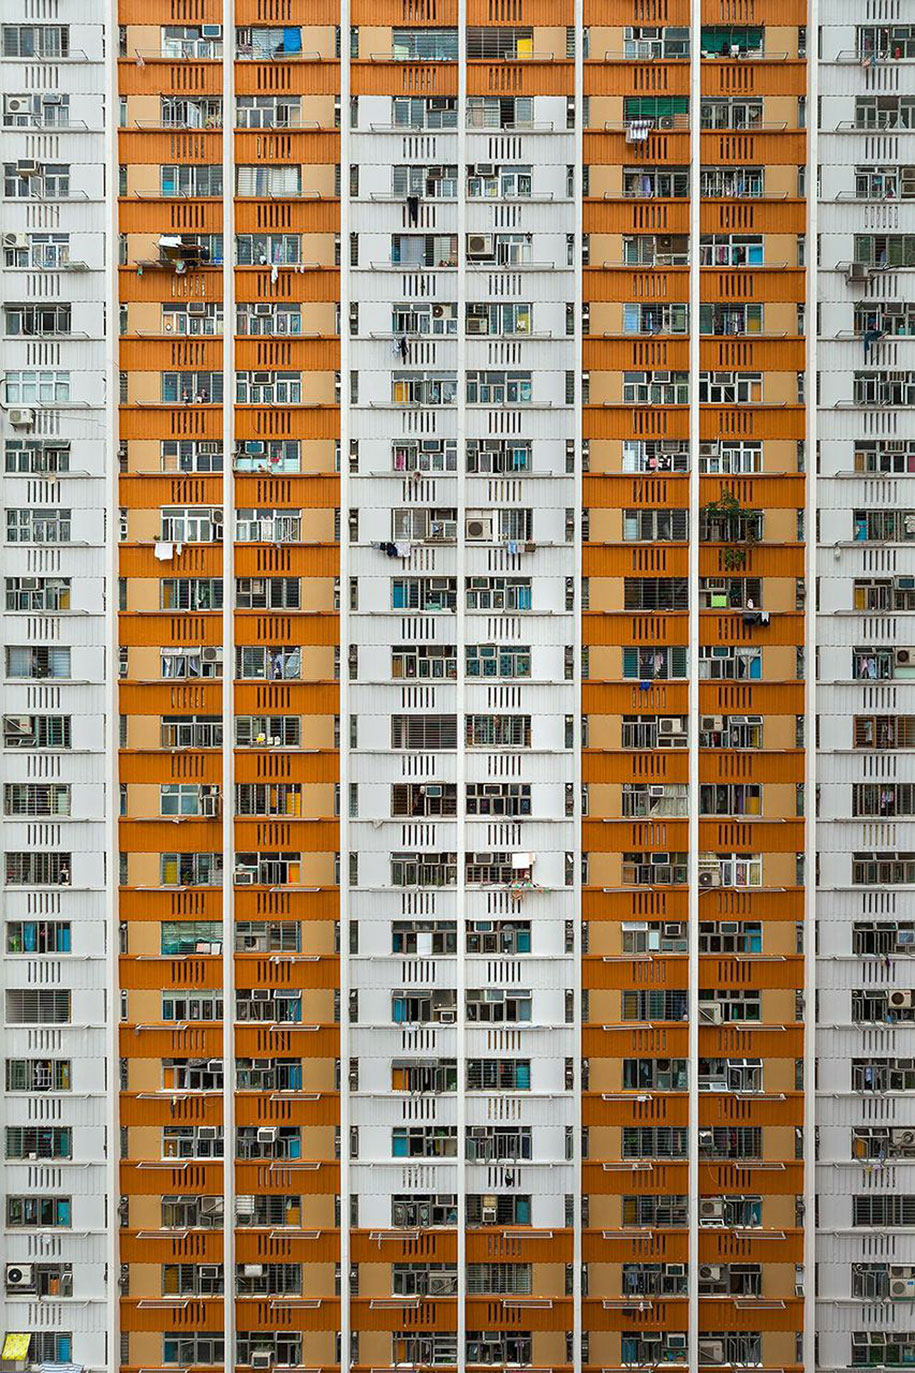 stacked-hong-kong-architecture-photography-peter-stewart-8